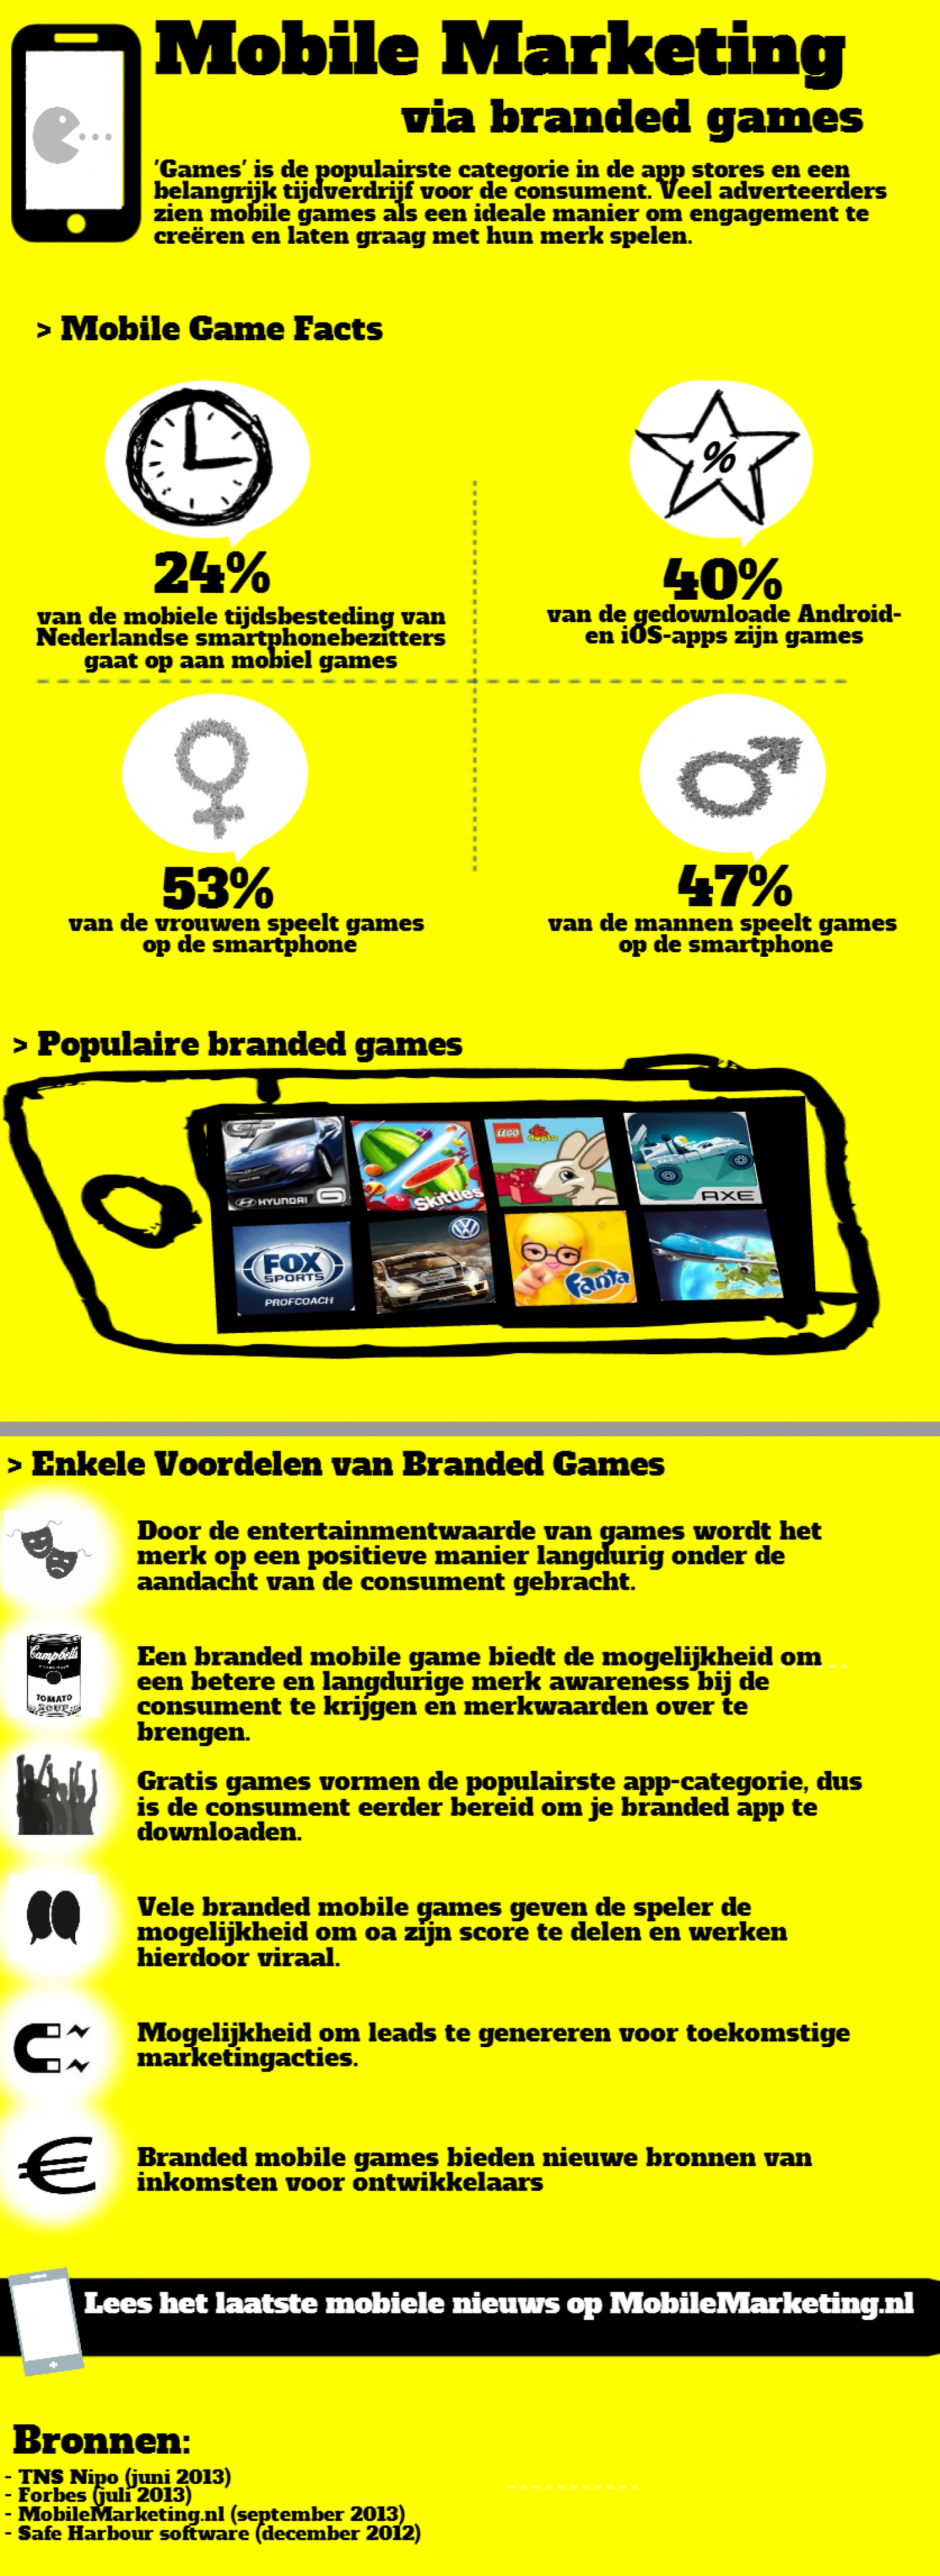 Mobile Marketing via branded games  Infographic